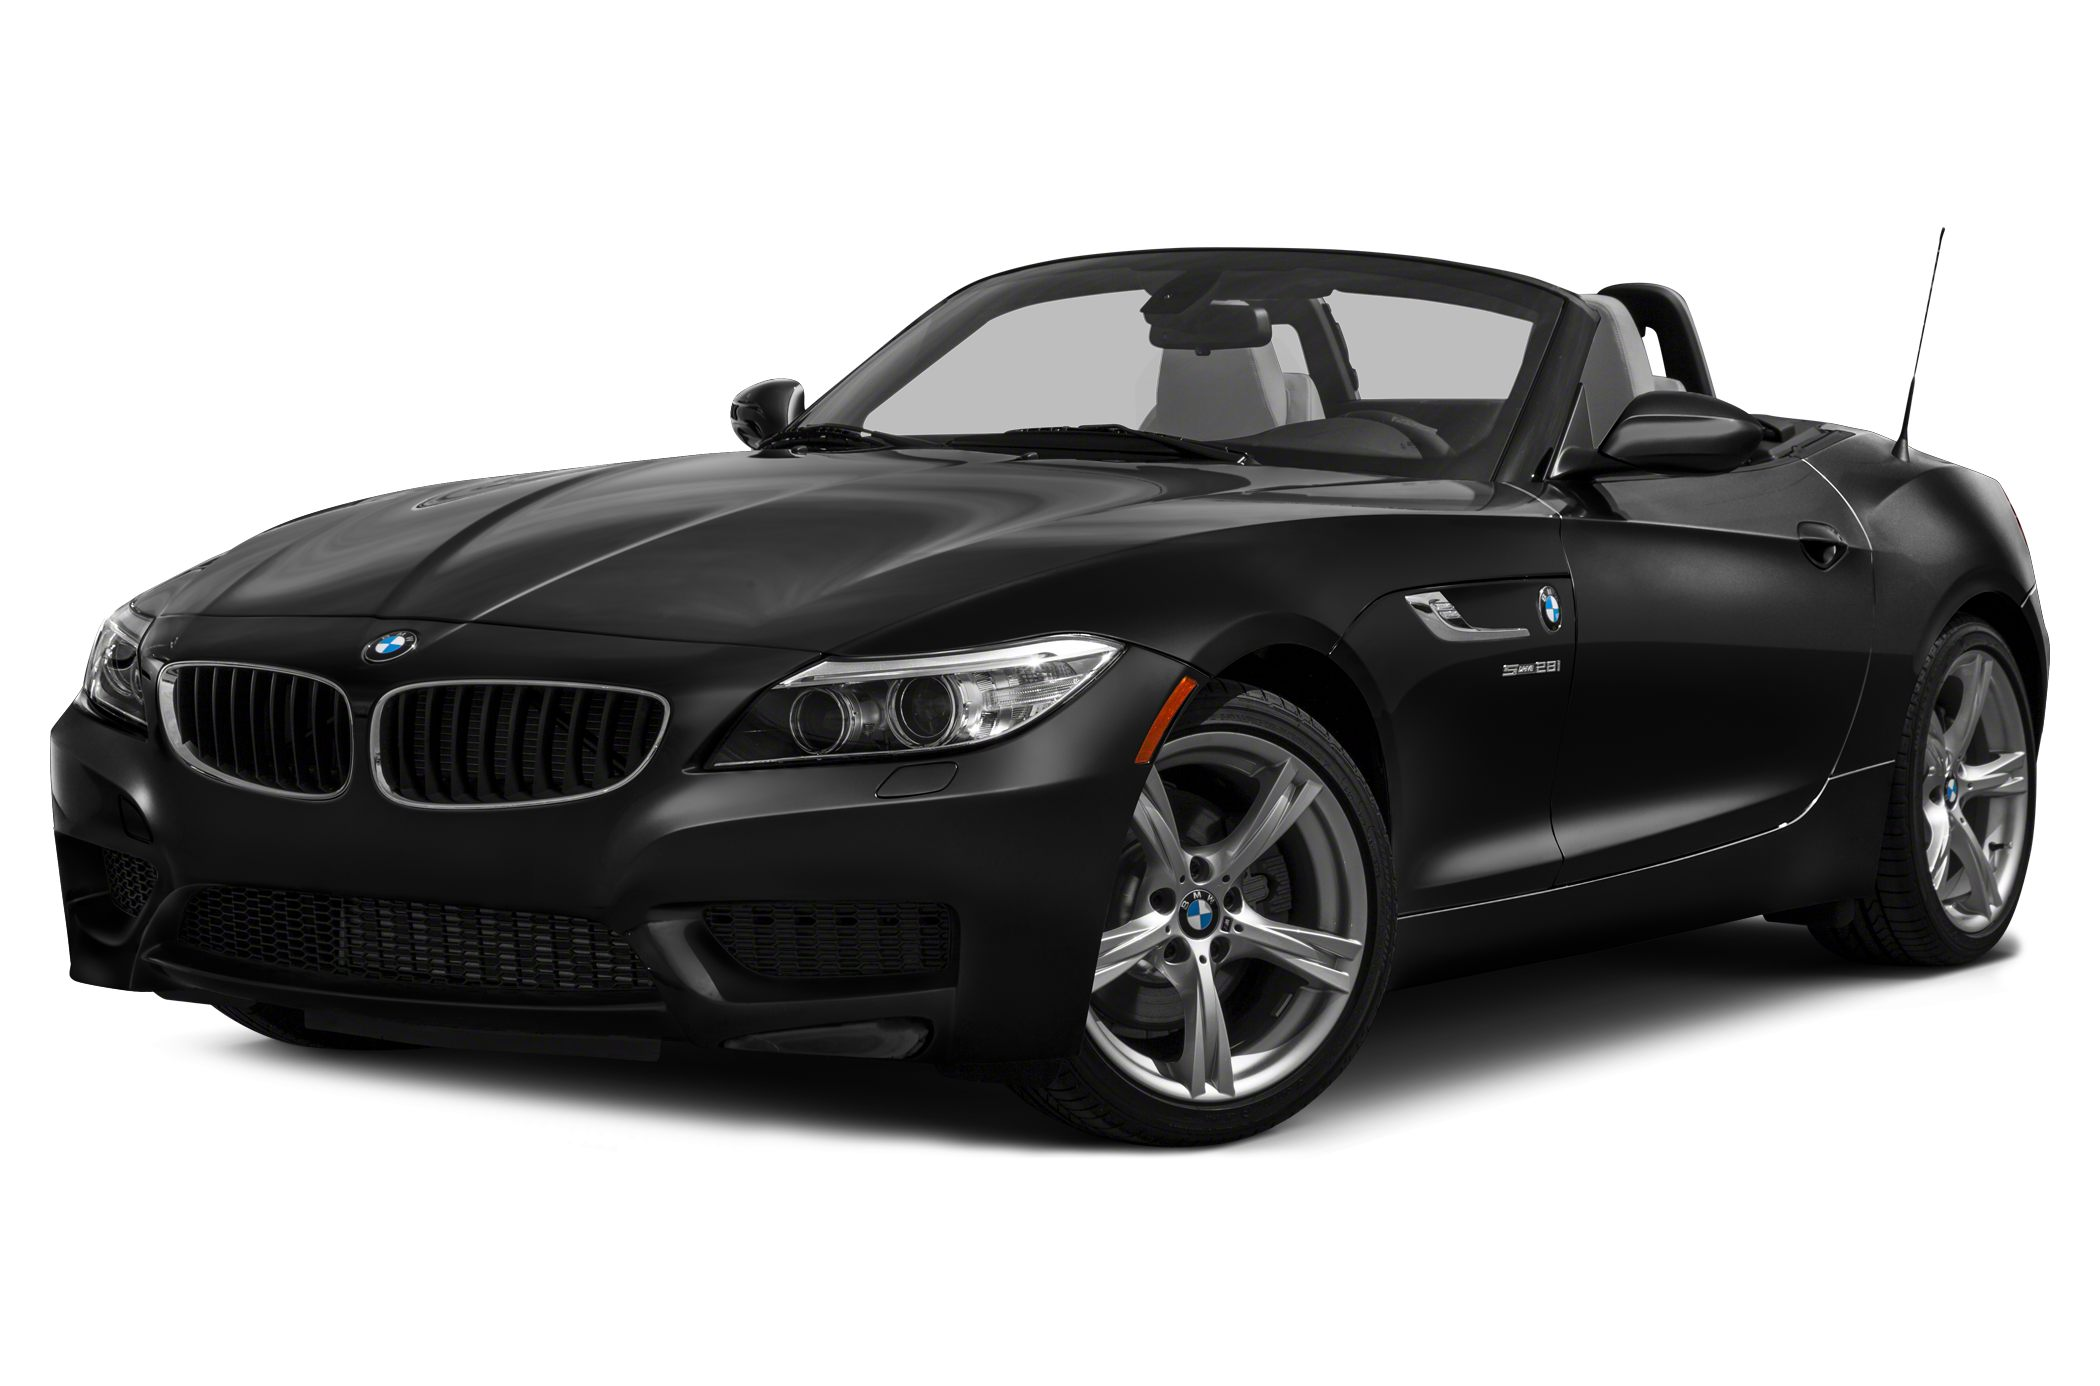 Bmw Z4 Wallpapers Vehicles Hq Bmw Z4 Pictures 4k Wallpapers 2019